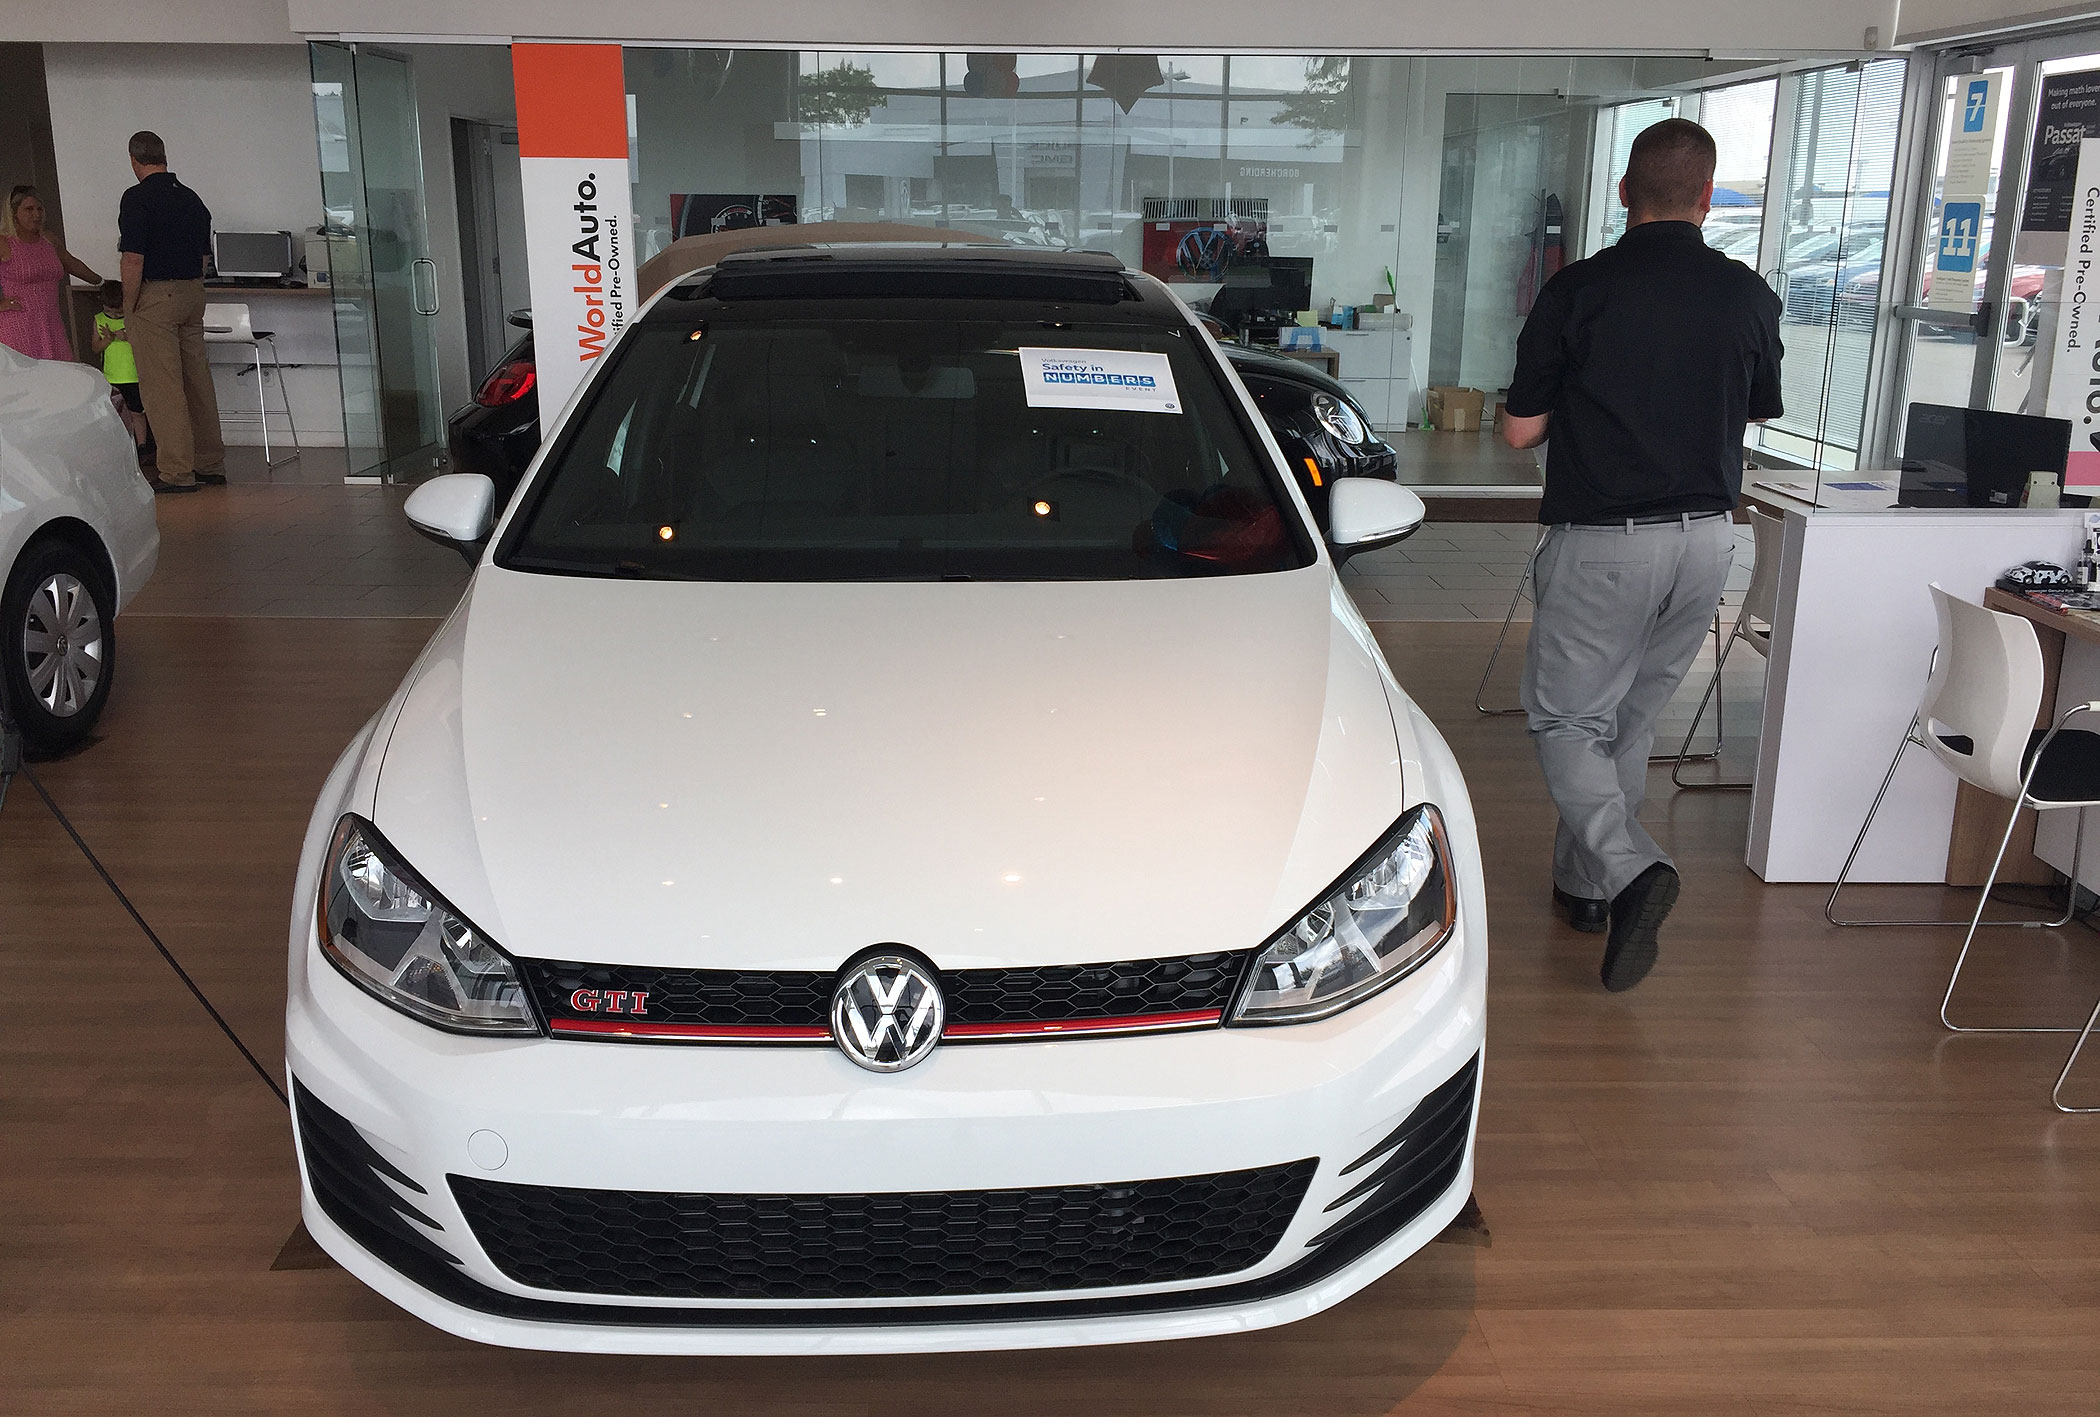 Volkswagen More Pain For Vw Brand Another Record For Audi